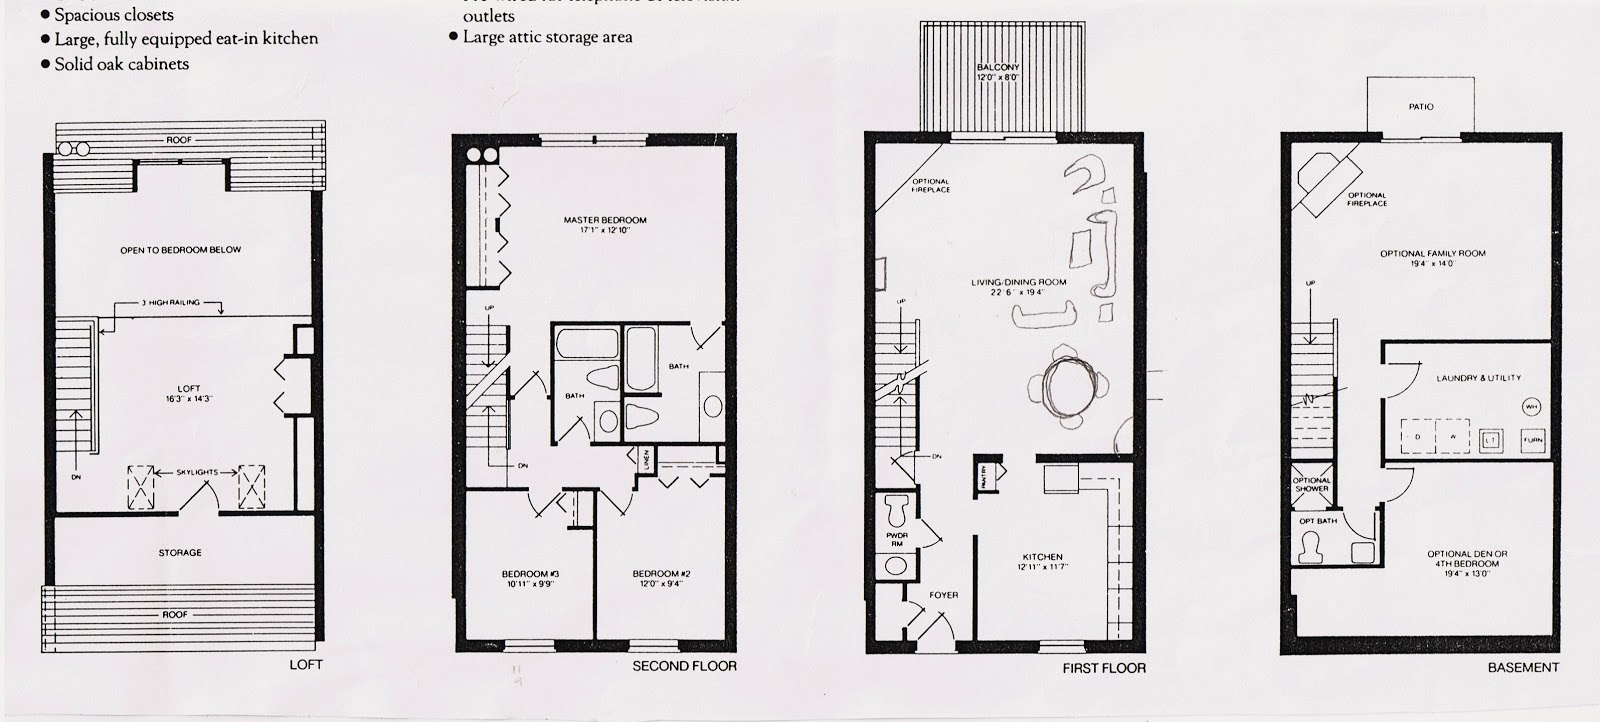 Bathroom floor plans for 7 x 10 home decorating for Kitchen design 7 x 7